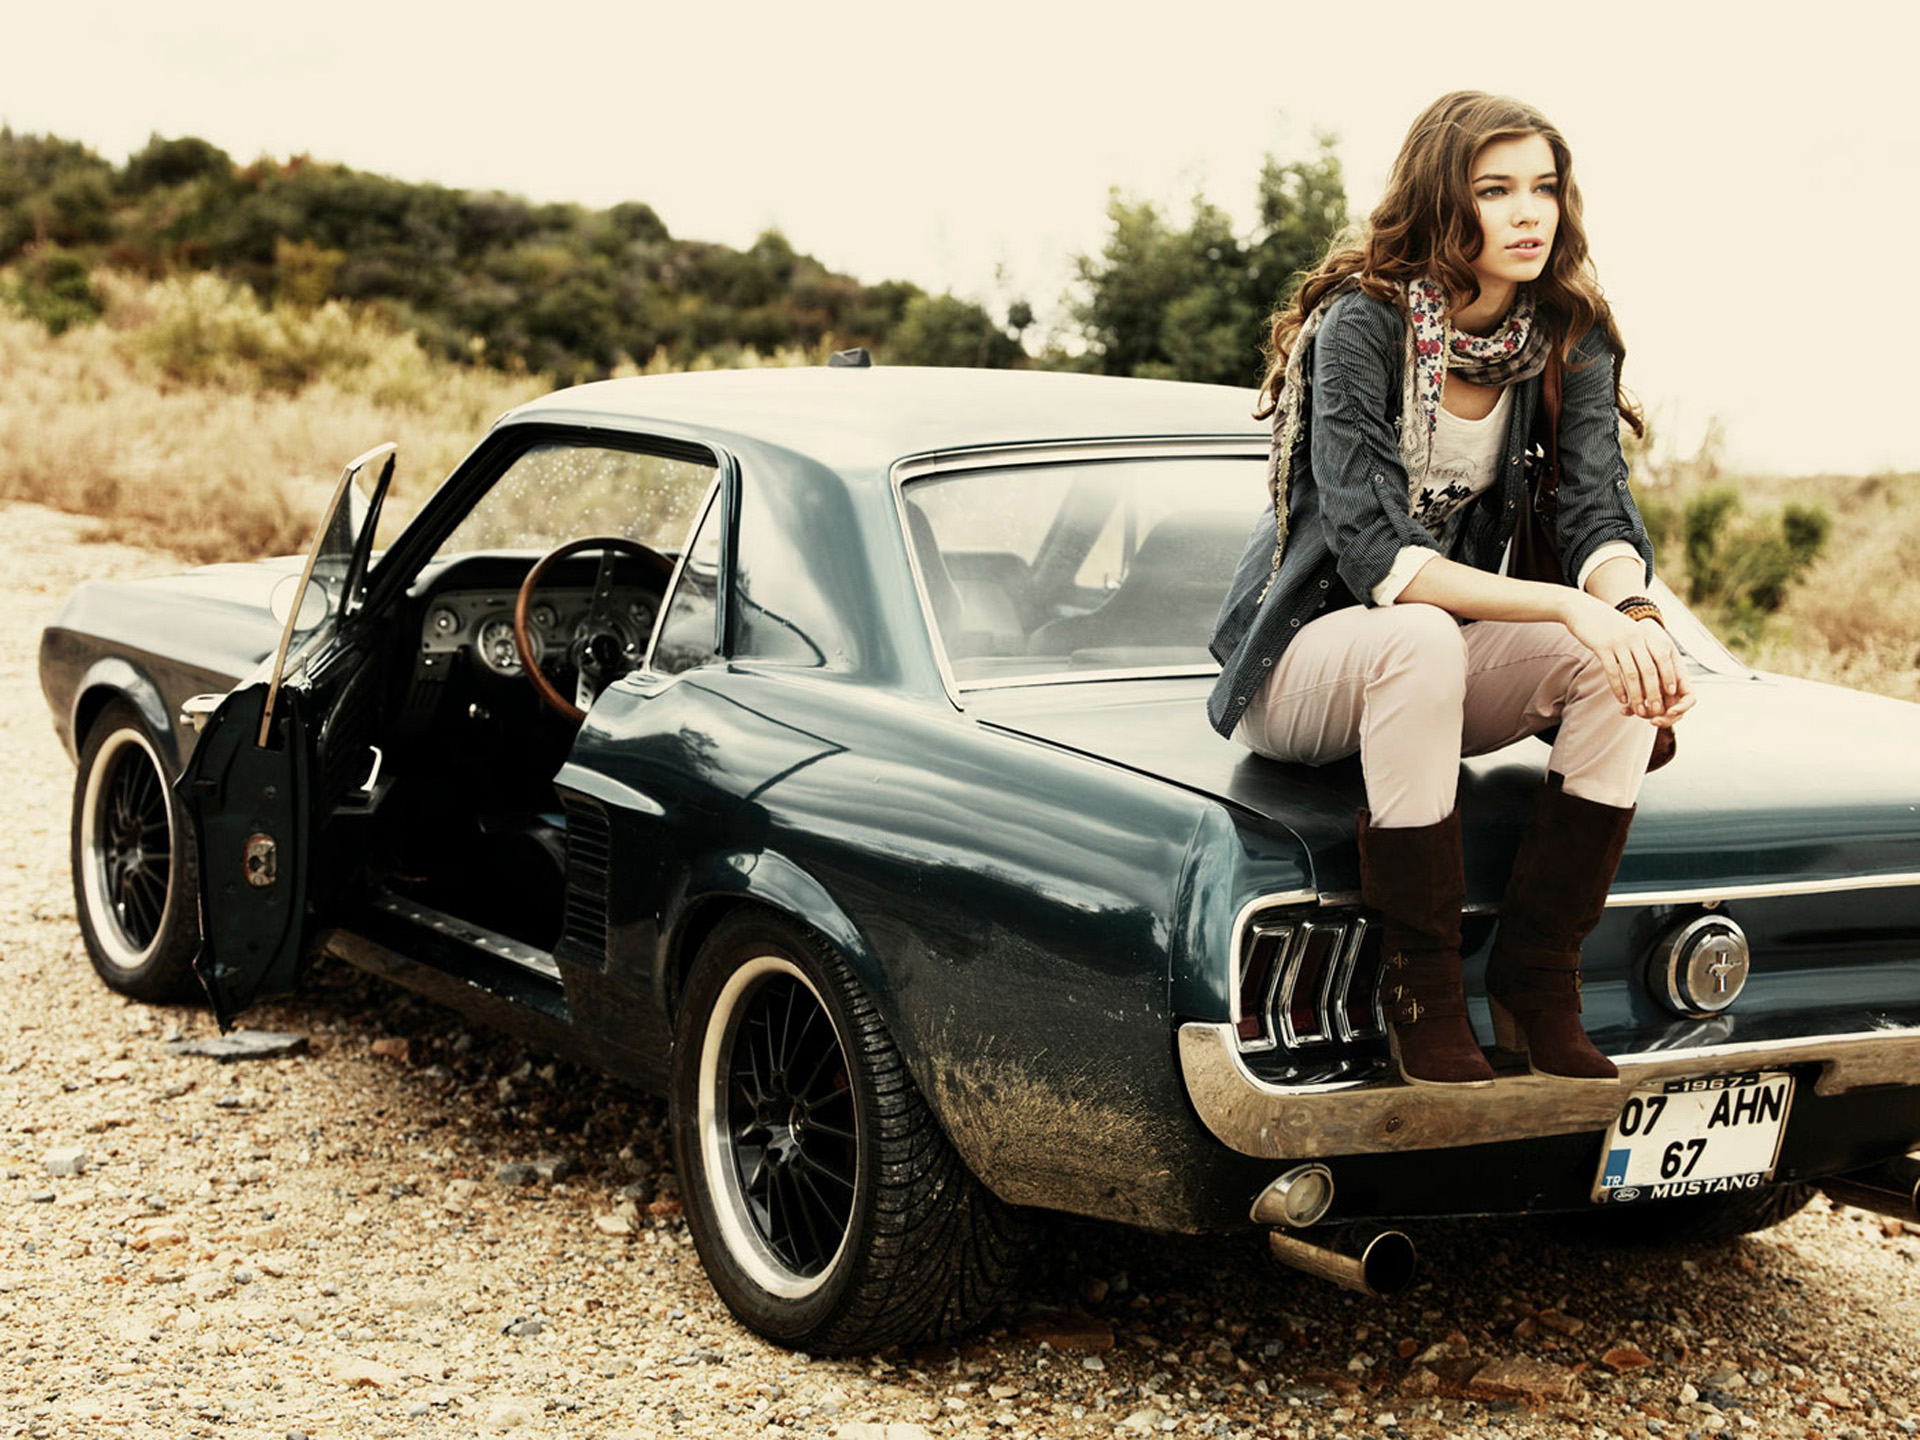 Ford  Mustang  967  Road  Gravel  Vintage  Model  Girl  Brown hair HD Wallpaper